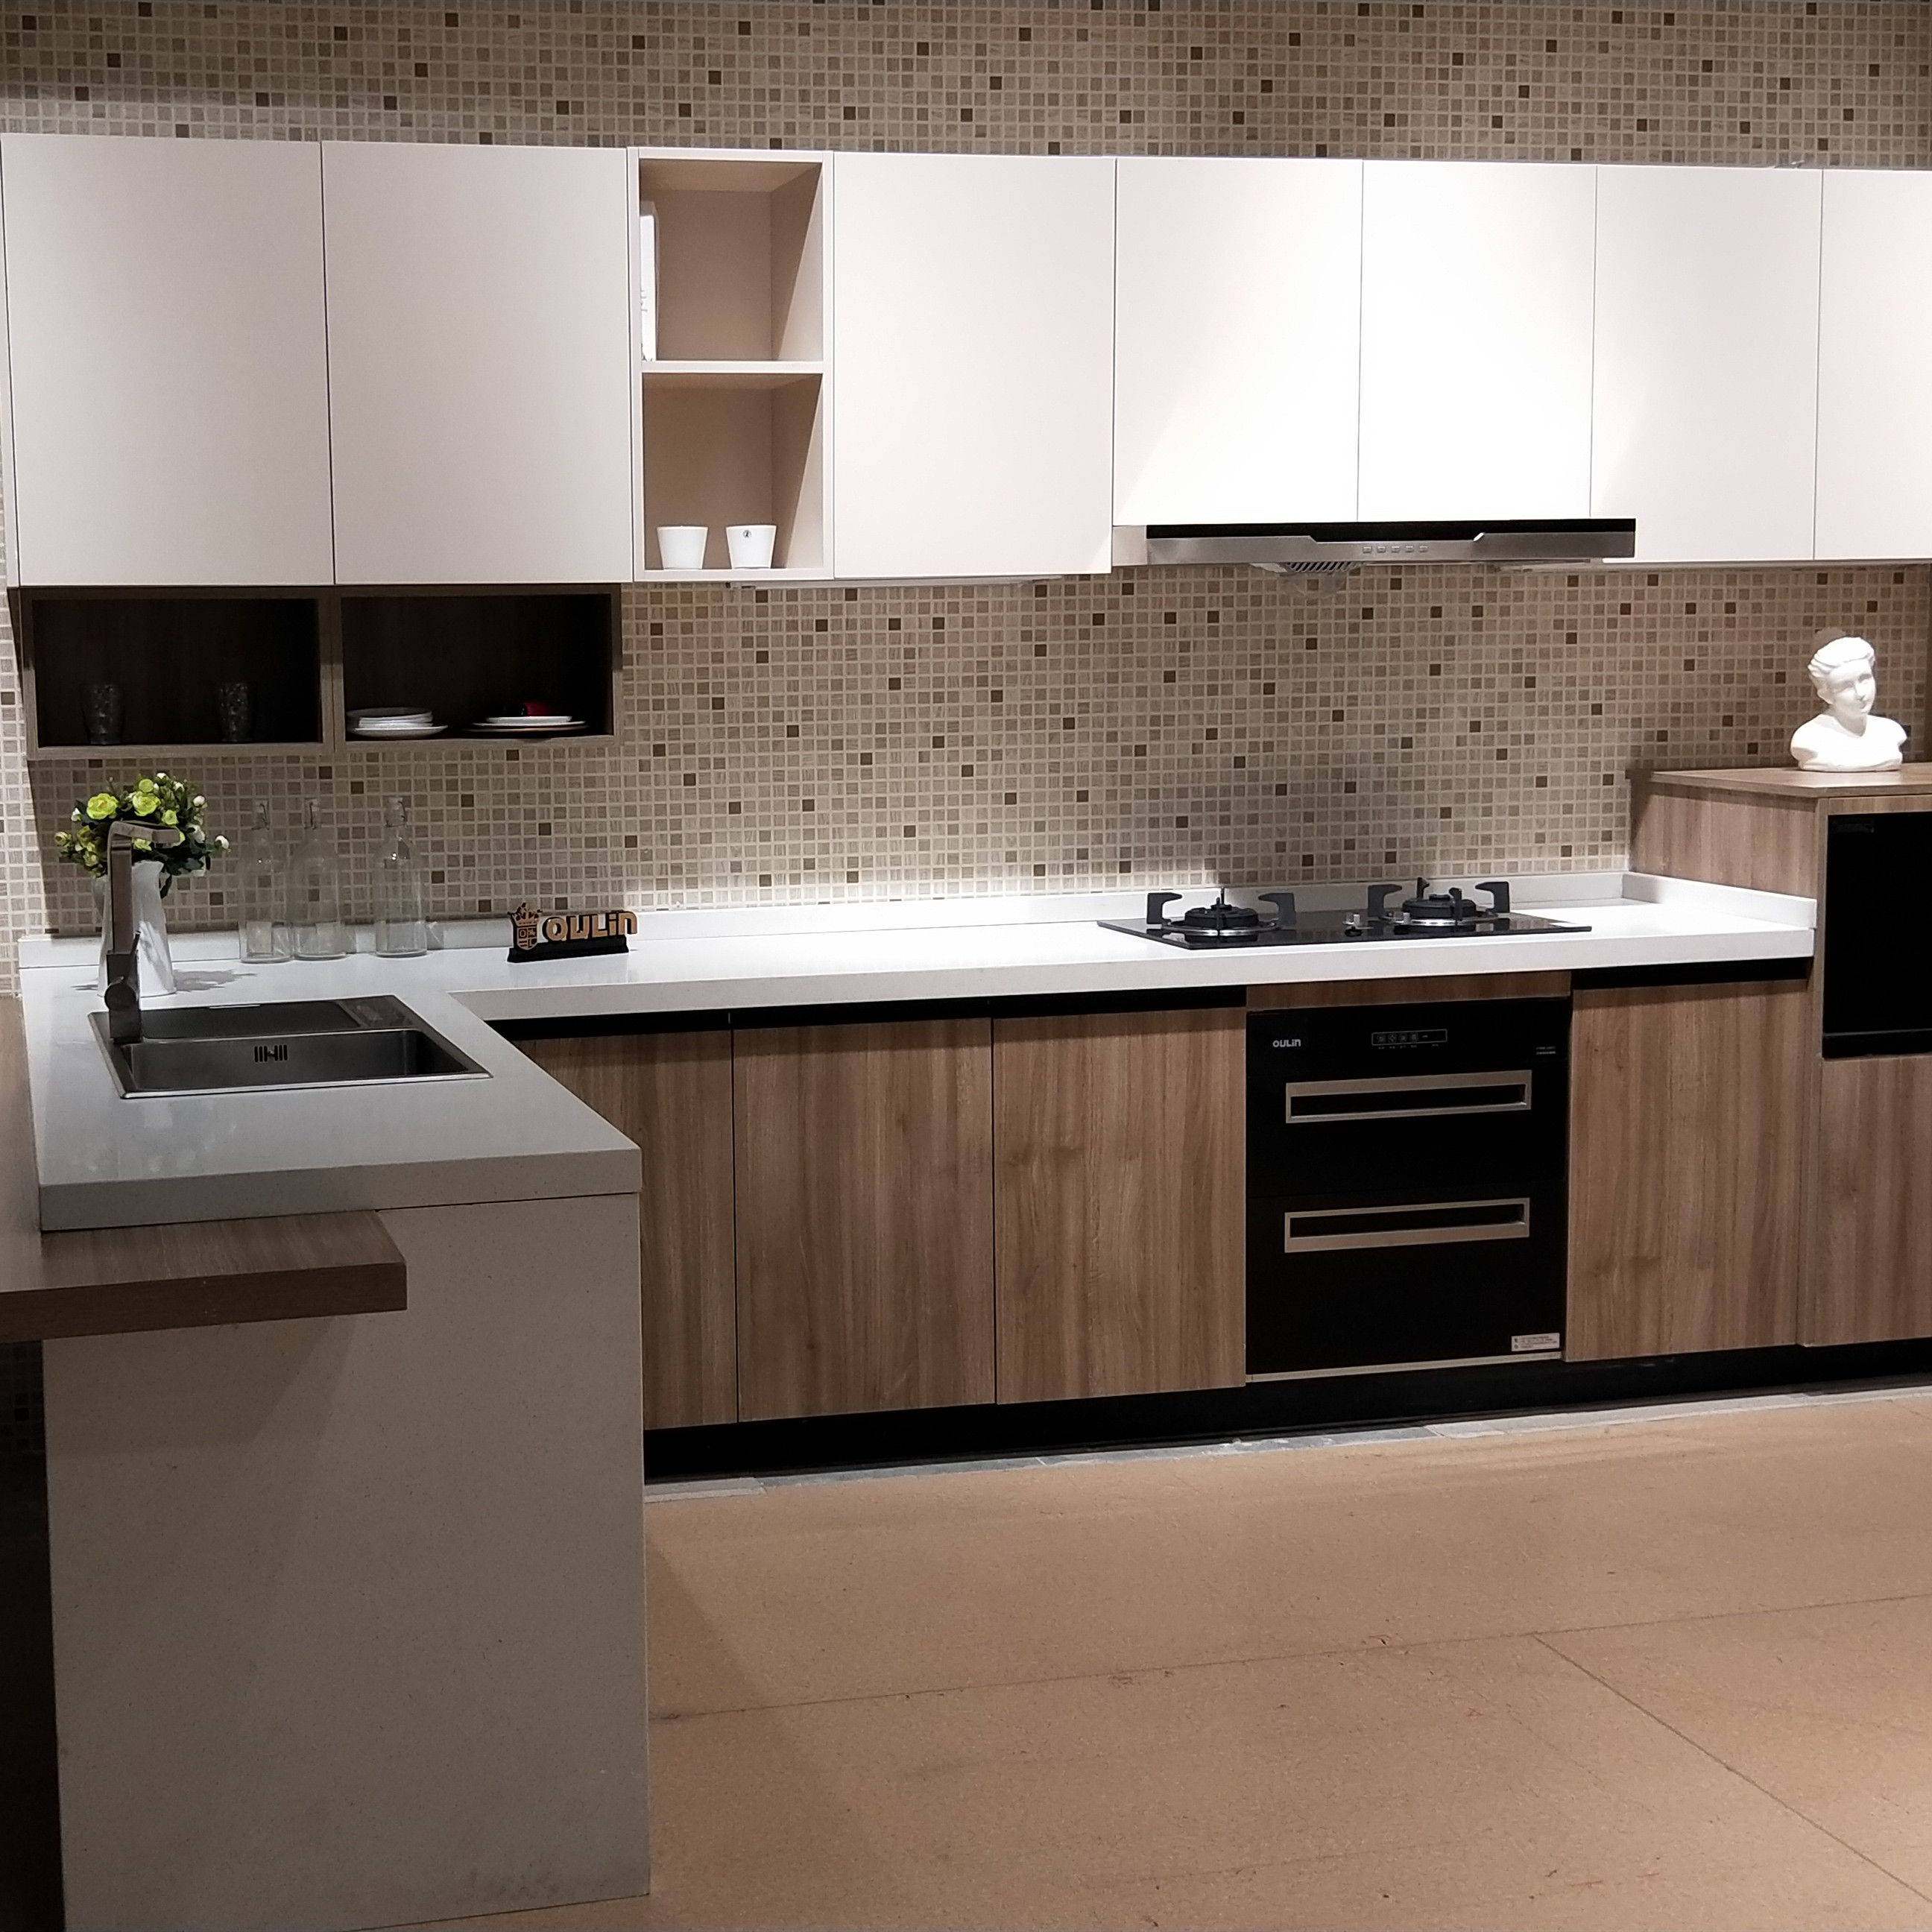 Lacquered Kitchen Cabinet Doors High Gloss Lacquer Kitchen CabiDoors   Buy Kitchen Cabi